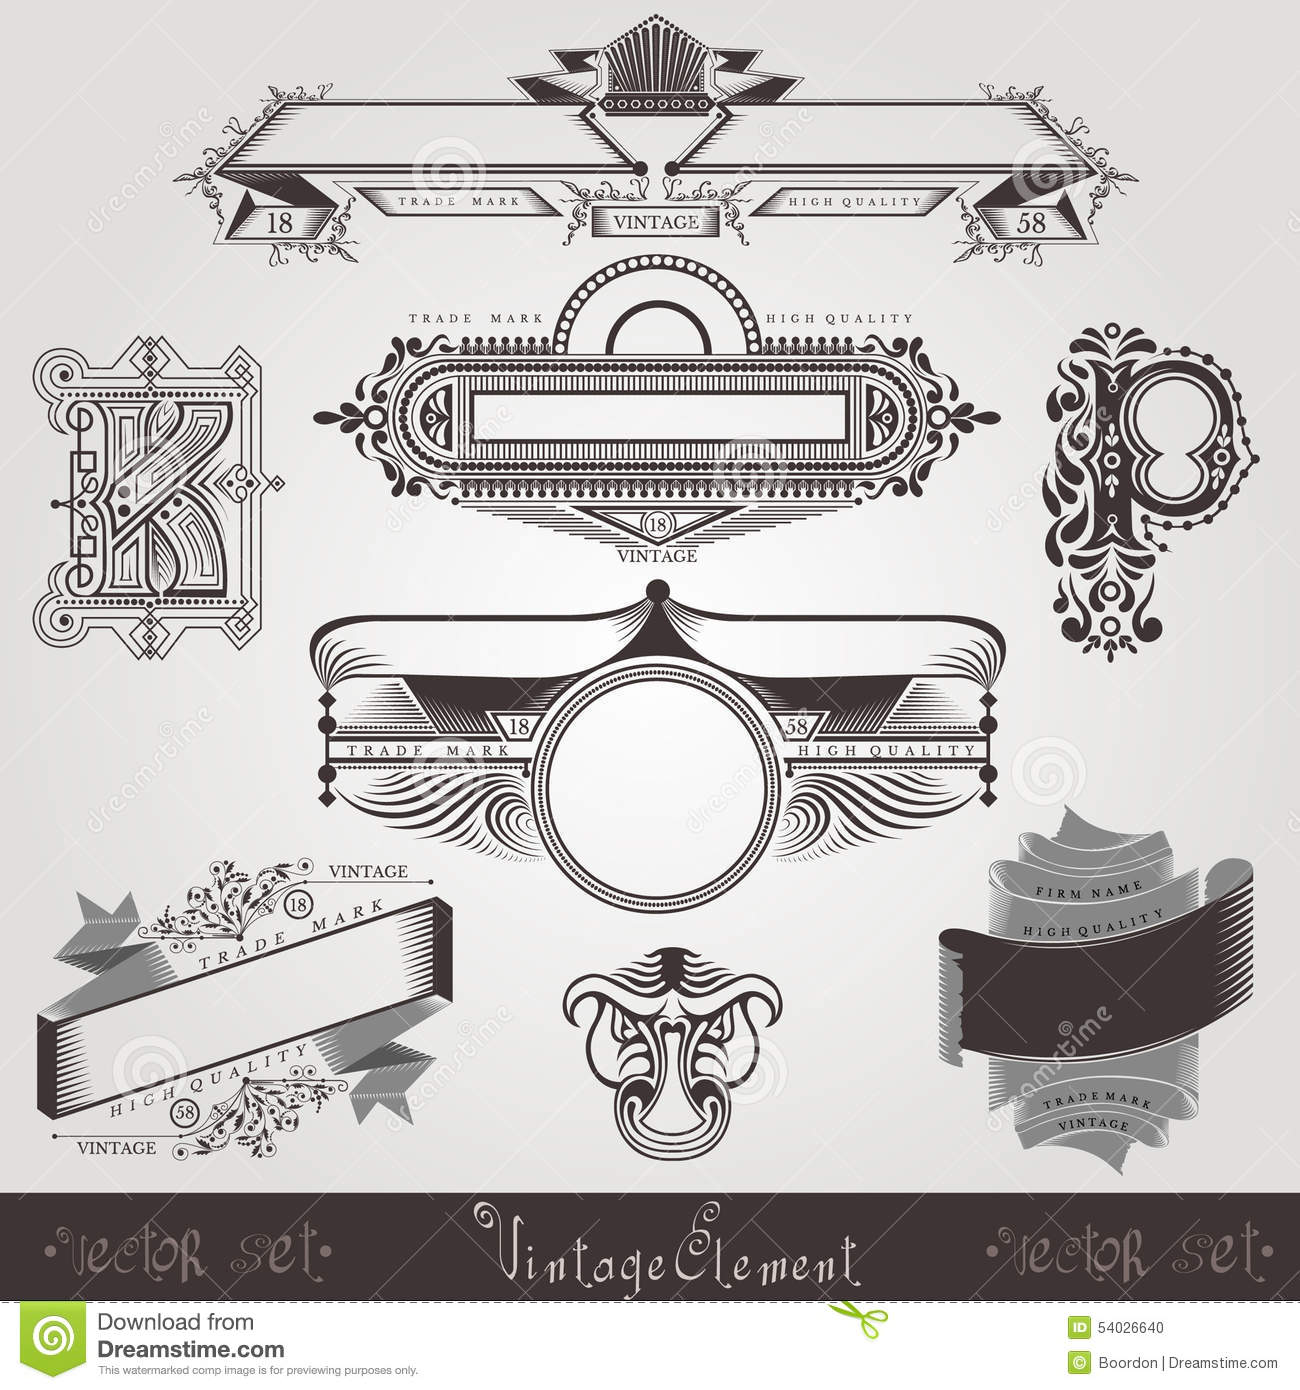 Vintage engraving banners with different letter and pattern stock download vintage engraving banners with different letter and pattern stock vector illustration of brand spiritdancerdesigns Image collections